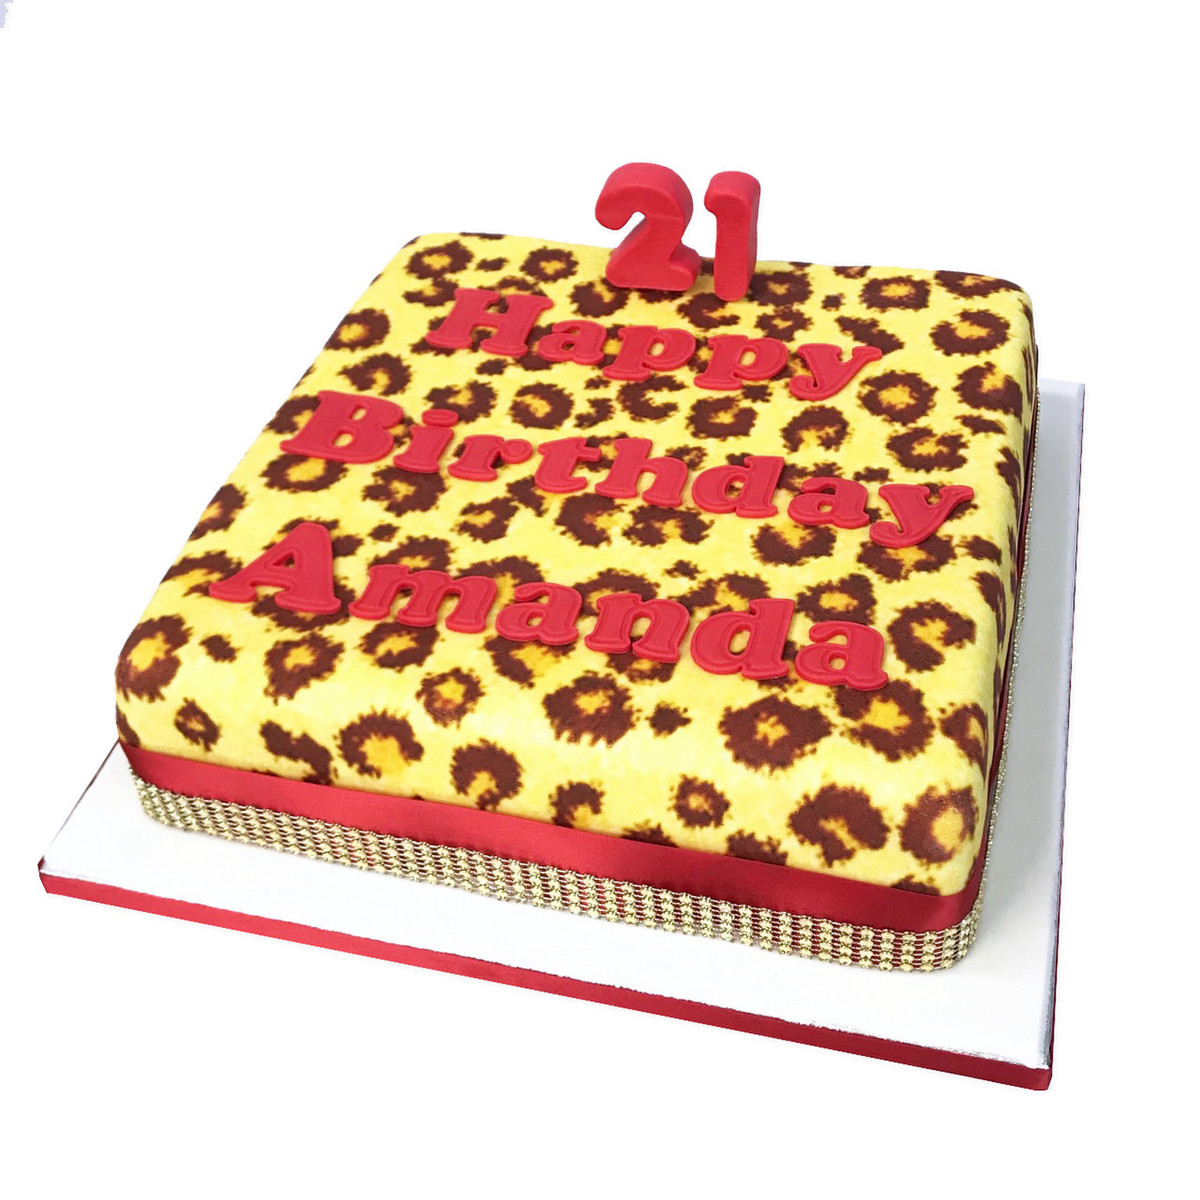 graphic regarding Printable Pictures of Birthday Cakes called Leopard Print Birthday Cake Childrens Birthday Cakes The